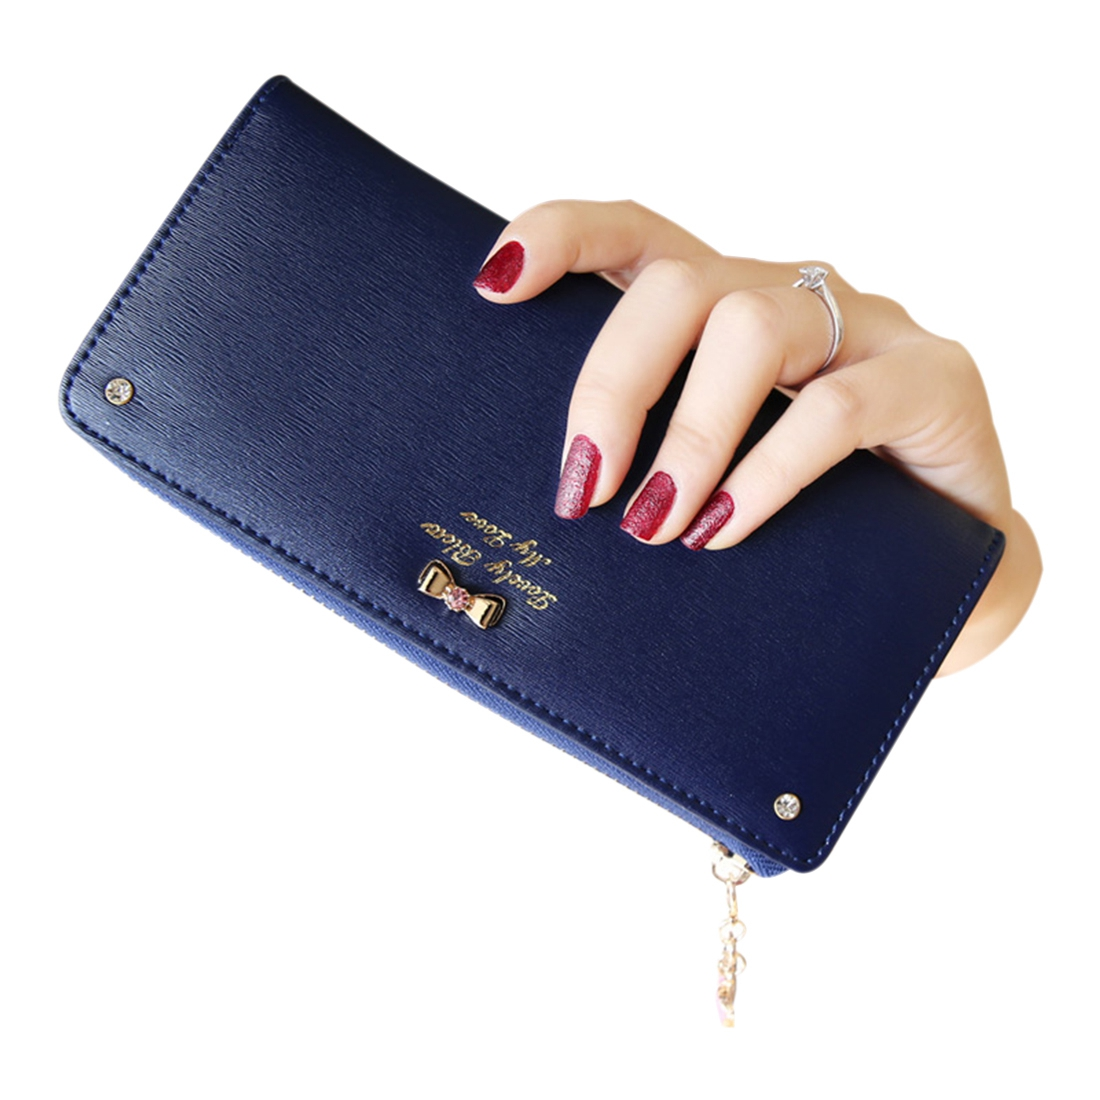 FGGS bowknot pendant PU Leather Long Design Women Wallet Coin Purse Ladies Handbag Day Clutch Bag(Navy Blue) yuanyu 2018 new hot free shipping real python leather women clutch women hand caught bag women bag long snake women day clutches